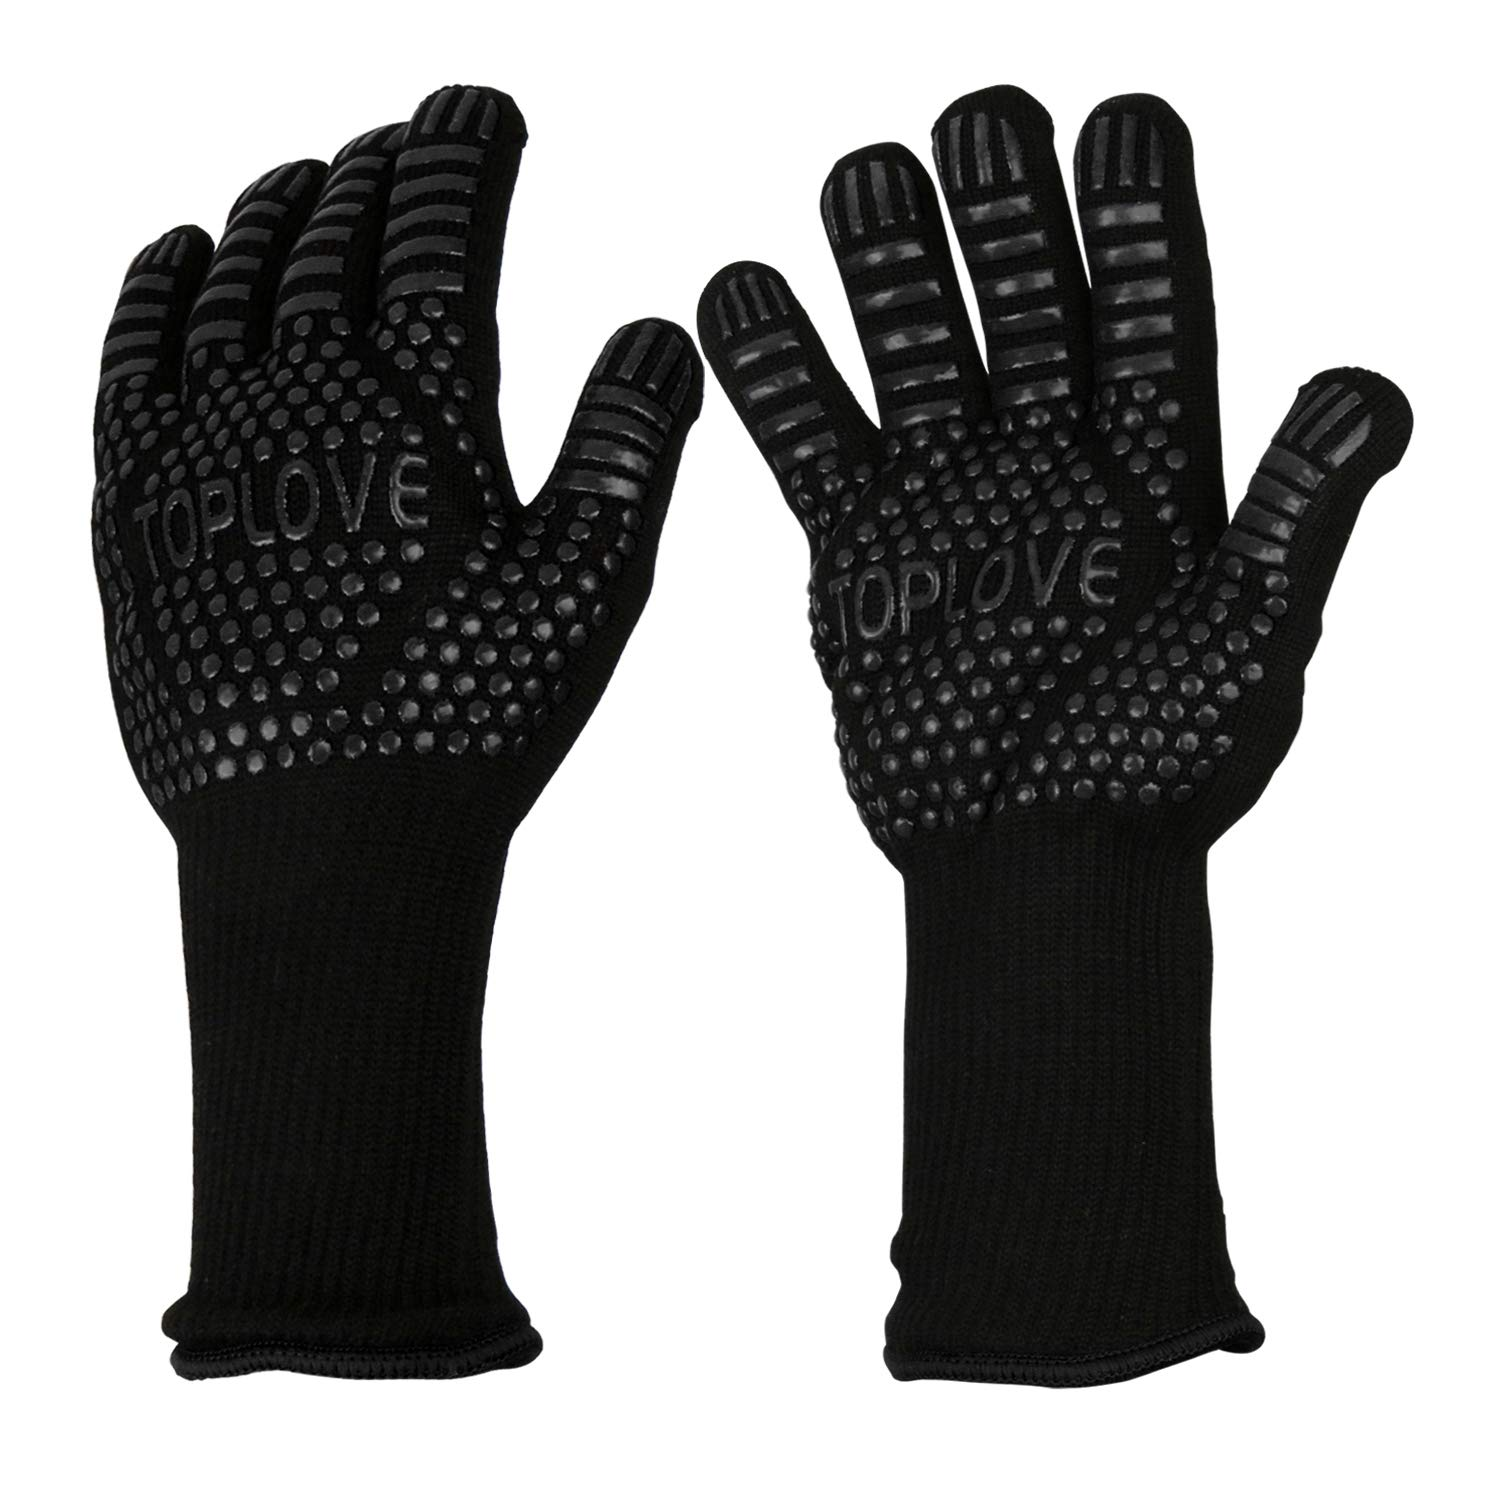 BBQ Grill Gloves [1472℉ NEWEST] EN407/EN420 CE Heat Resistant - Oven Silicone Glove Fireproof for Smoker Baking - High-temp Barbecue Grilling Potholders - Heat-insulated Cooking Mitt, X-Long by ASKALI